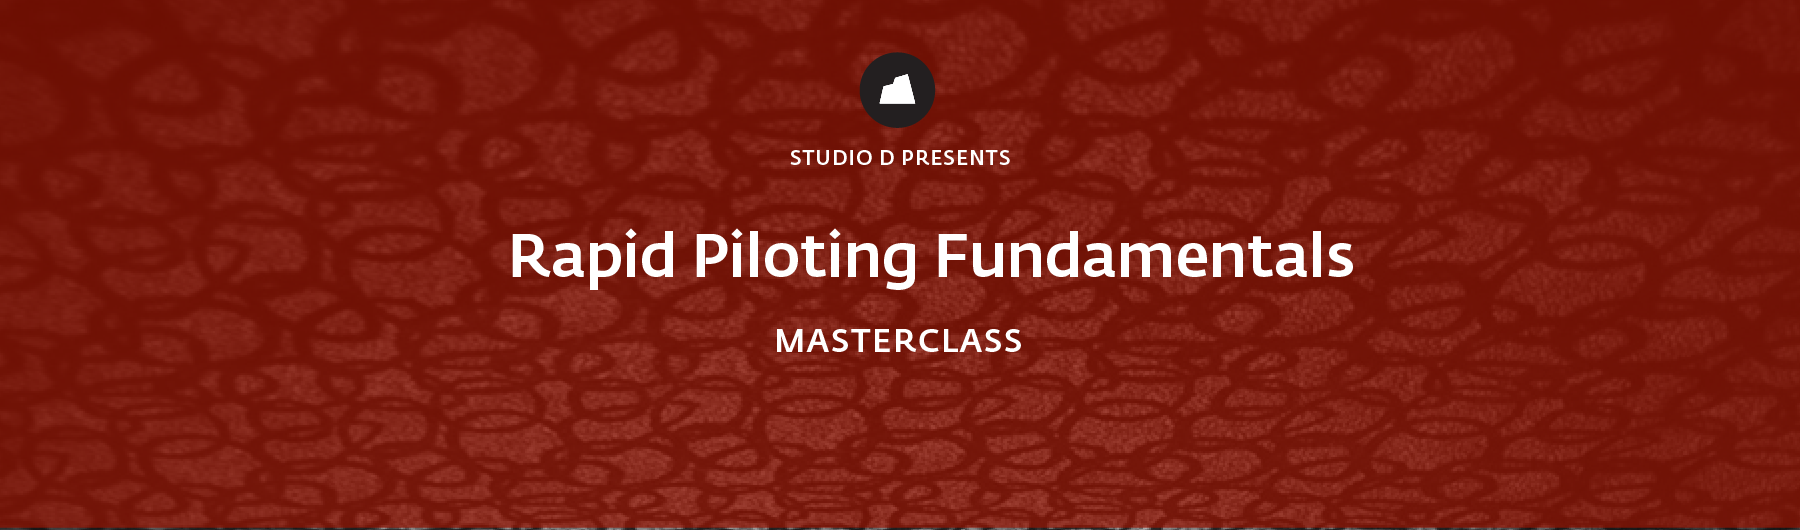 Rapid Piloting Fundamentals Masterclass, 15 May 2020, San Francisco